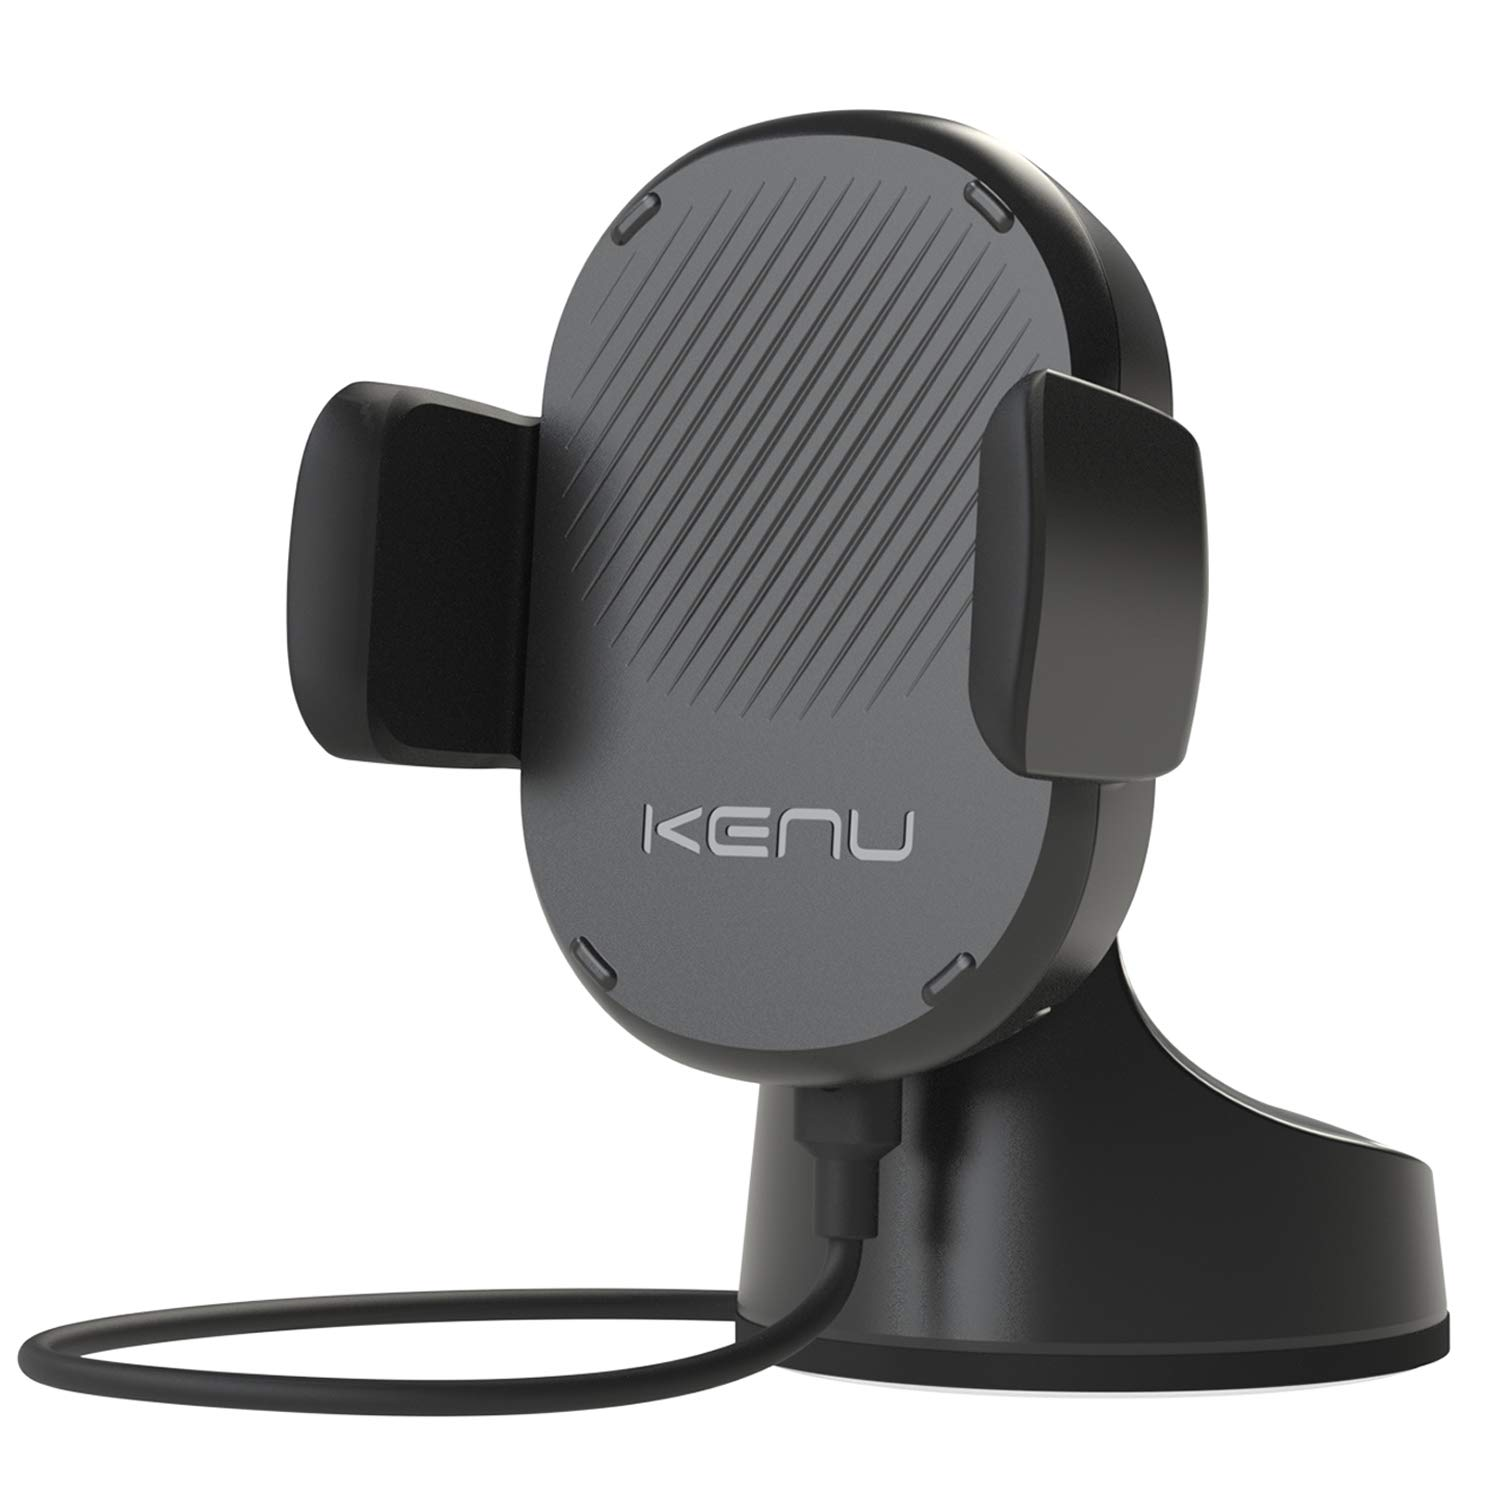 Kenu Airbase Wireless | Qi Fast-Charging Dashboard Car Mount | Wireless Car Charger, Compatible with iPhone Xs Max/Xs iPhone 8 Plus/8, Pixel 3XL/3 Car Accessories, Samsung Galaxy Phone Stand | Black by Kenu